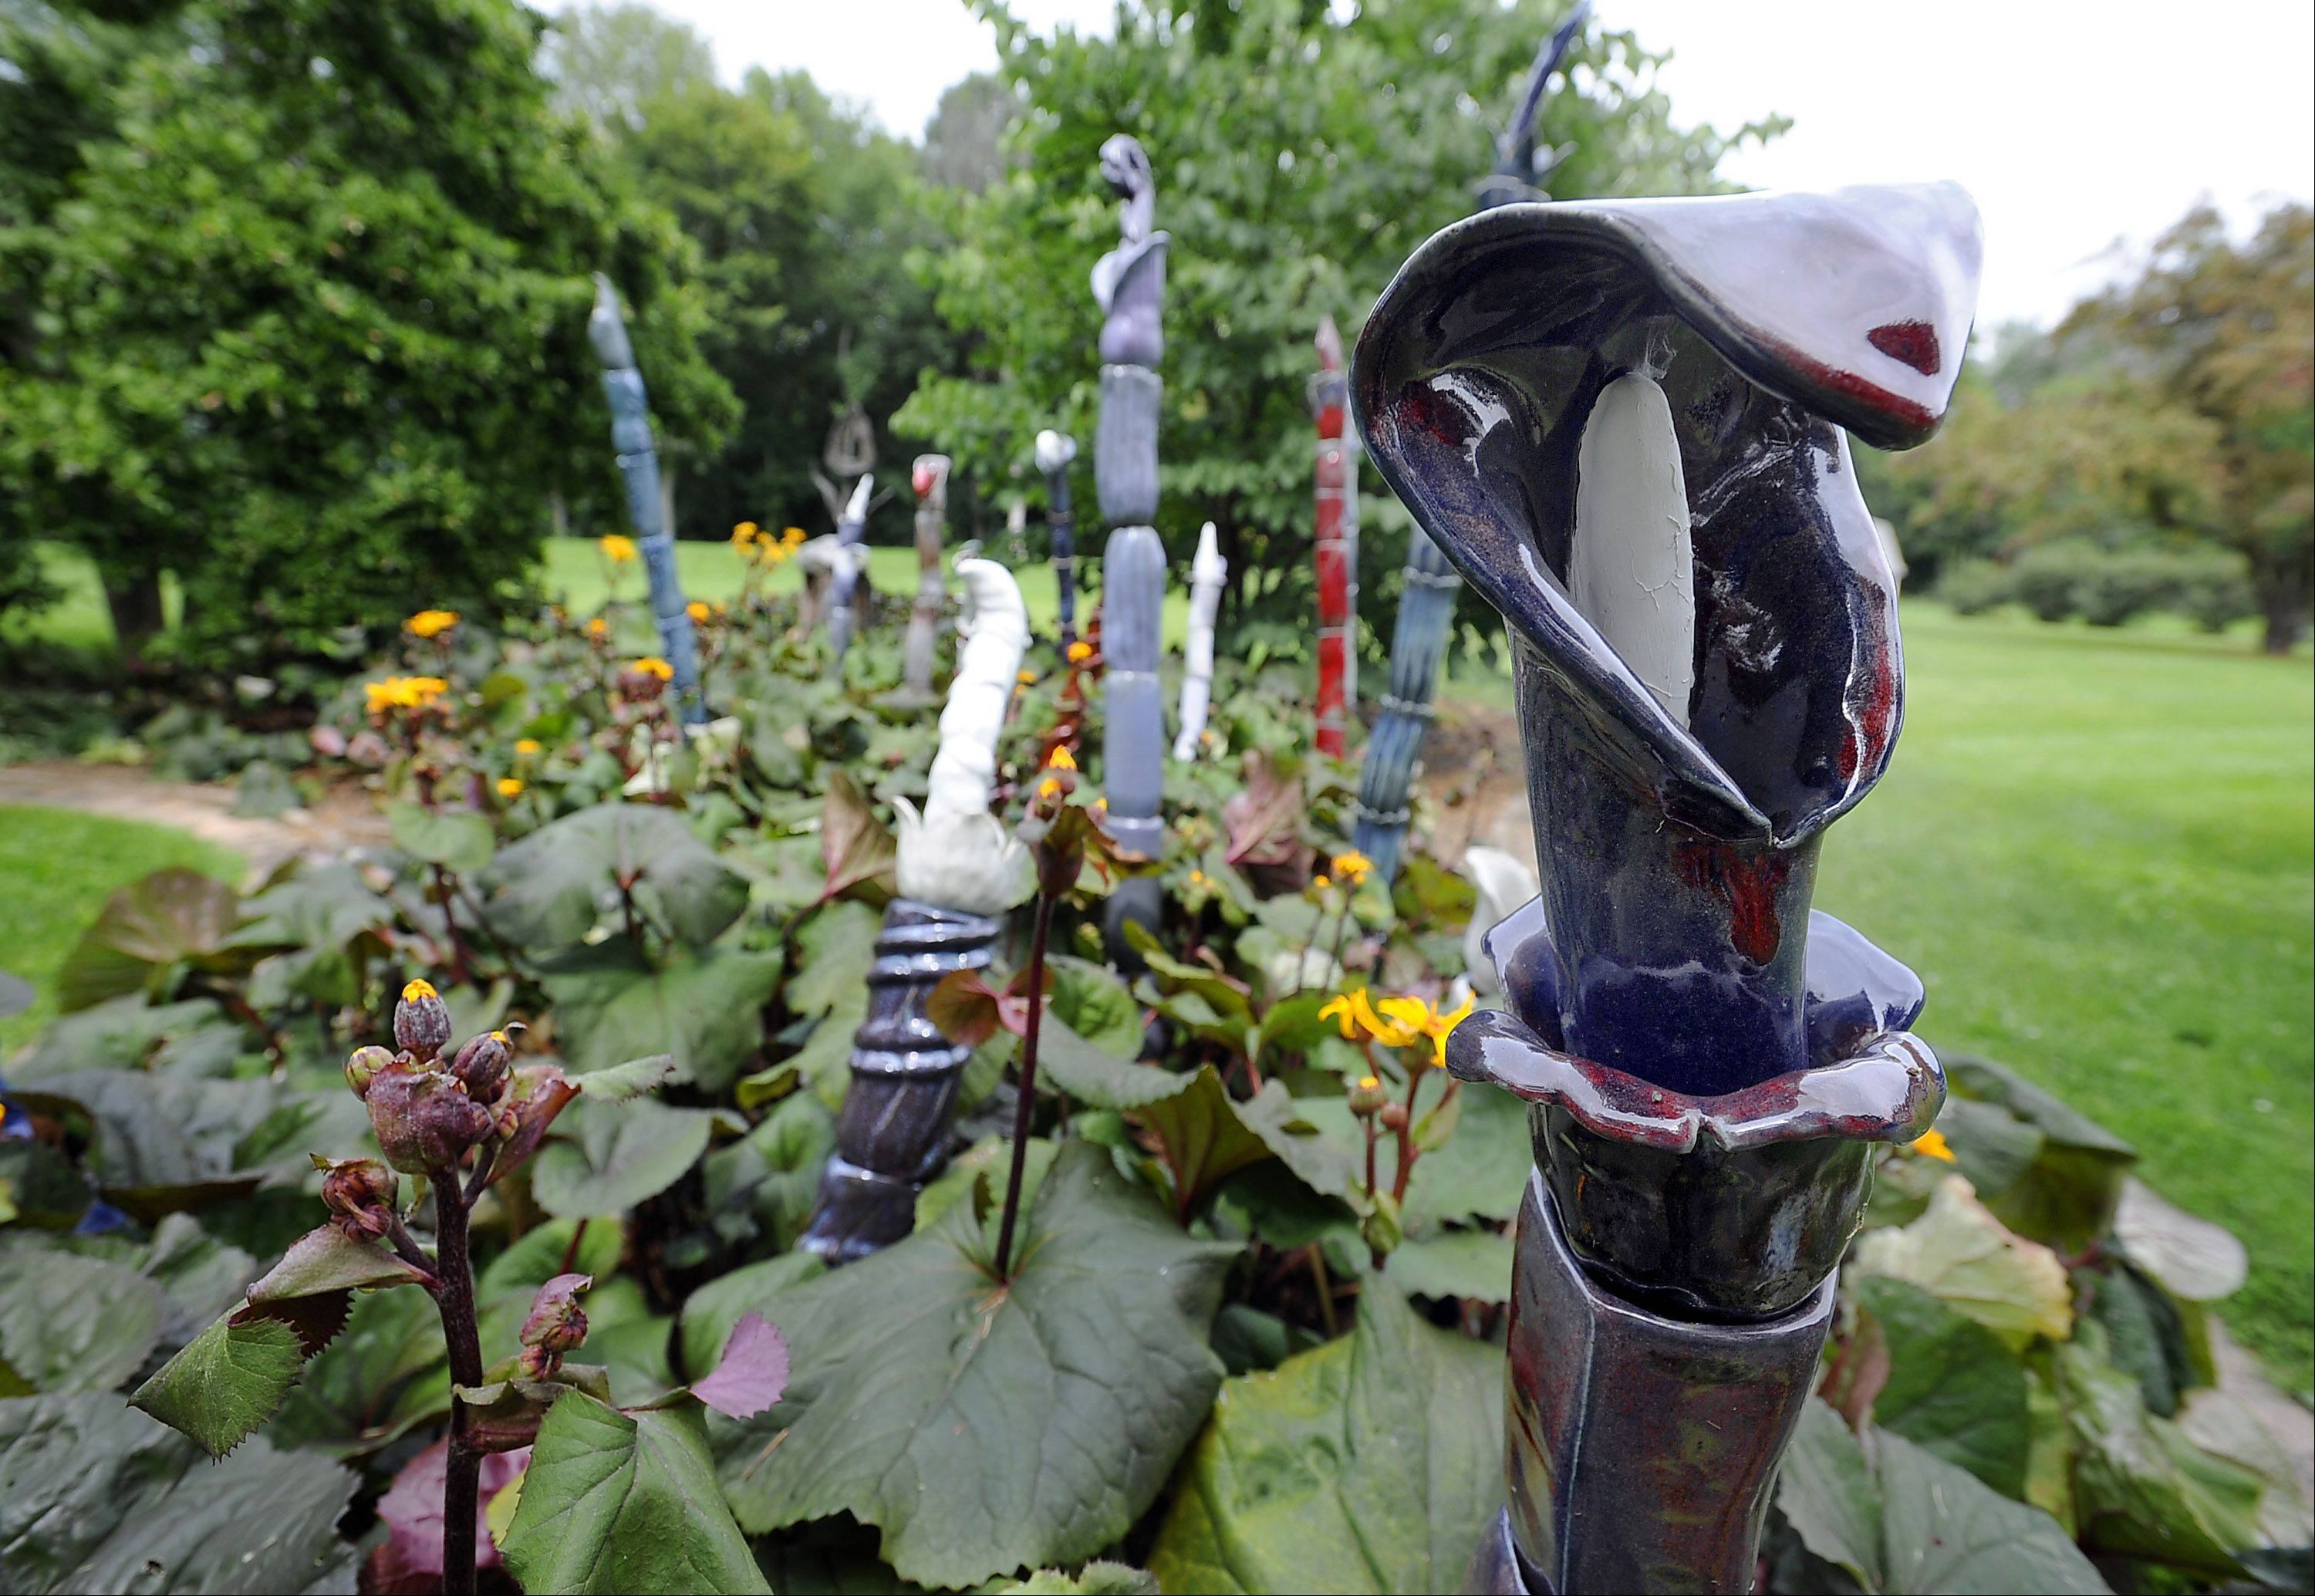 Segmented ceramic whips with glazes in various colors create an Alice in Wonderland scene in one of Lynn Rushing's gardens.